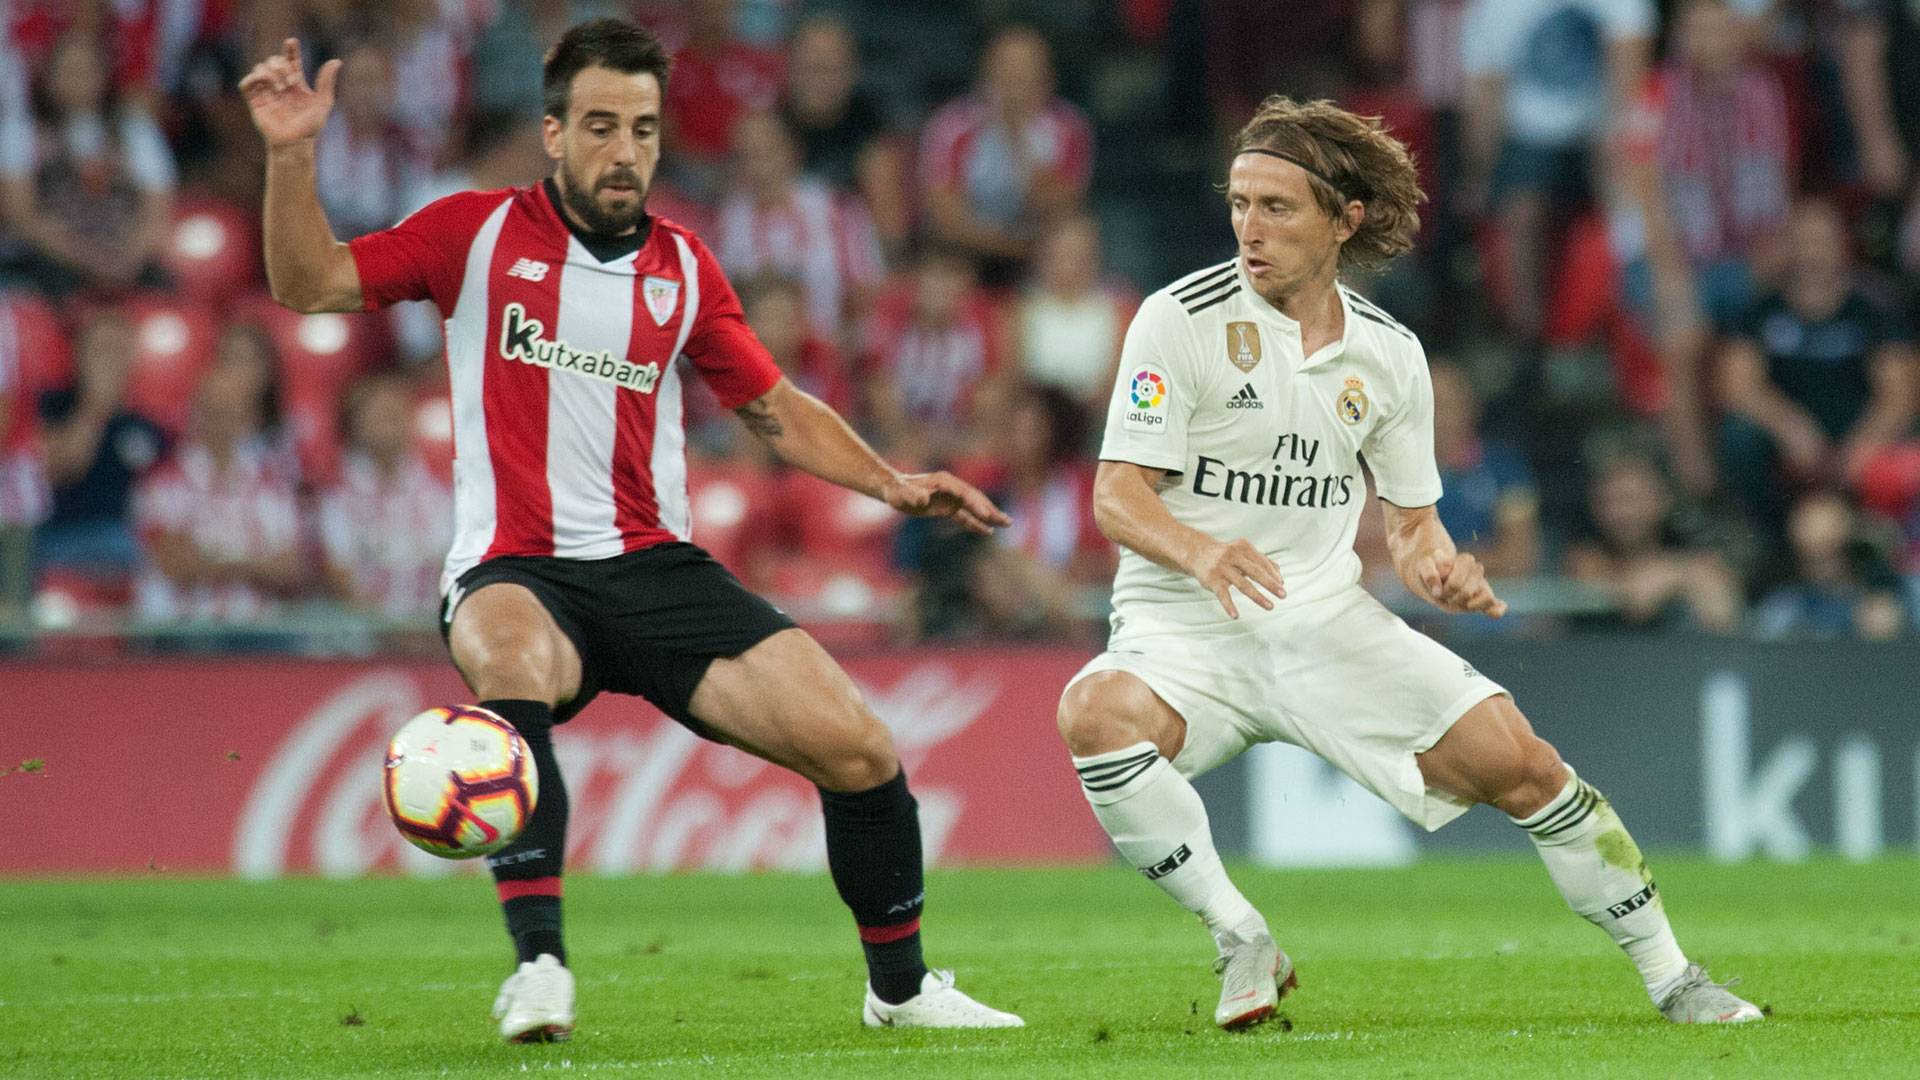 Real Madrid CF – Athletic Club partidarako sarrerak